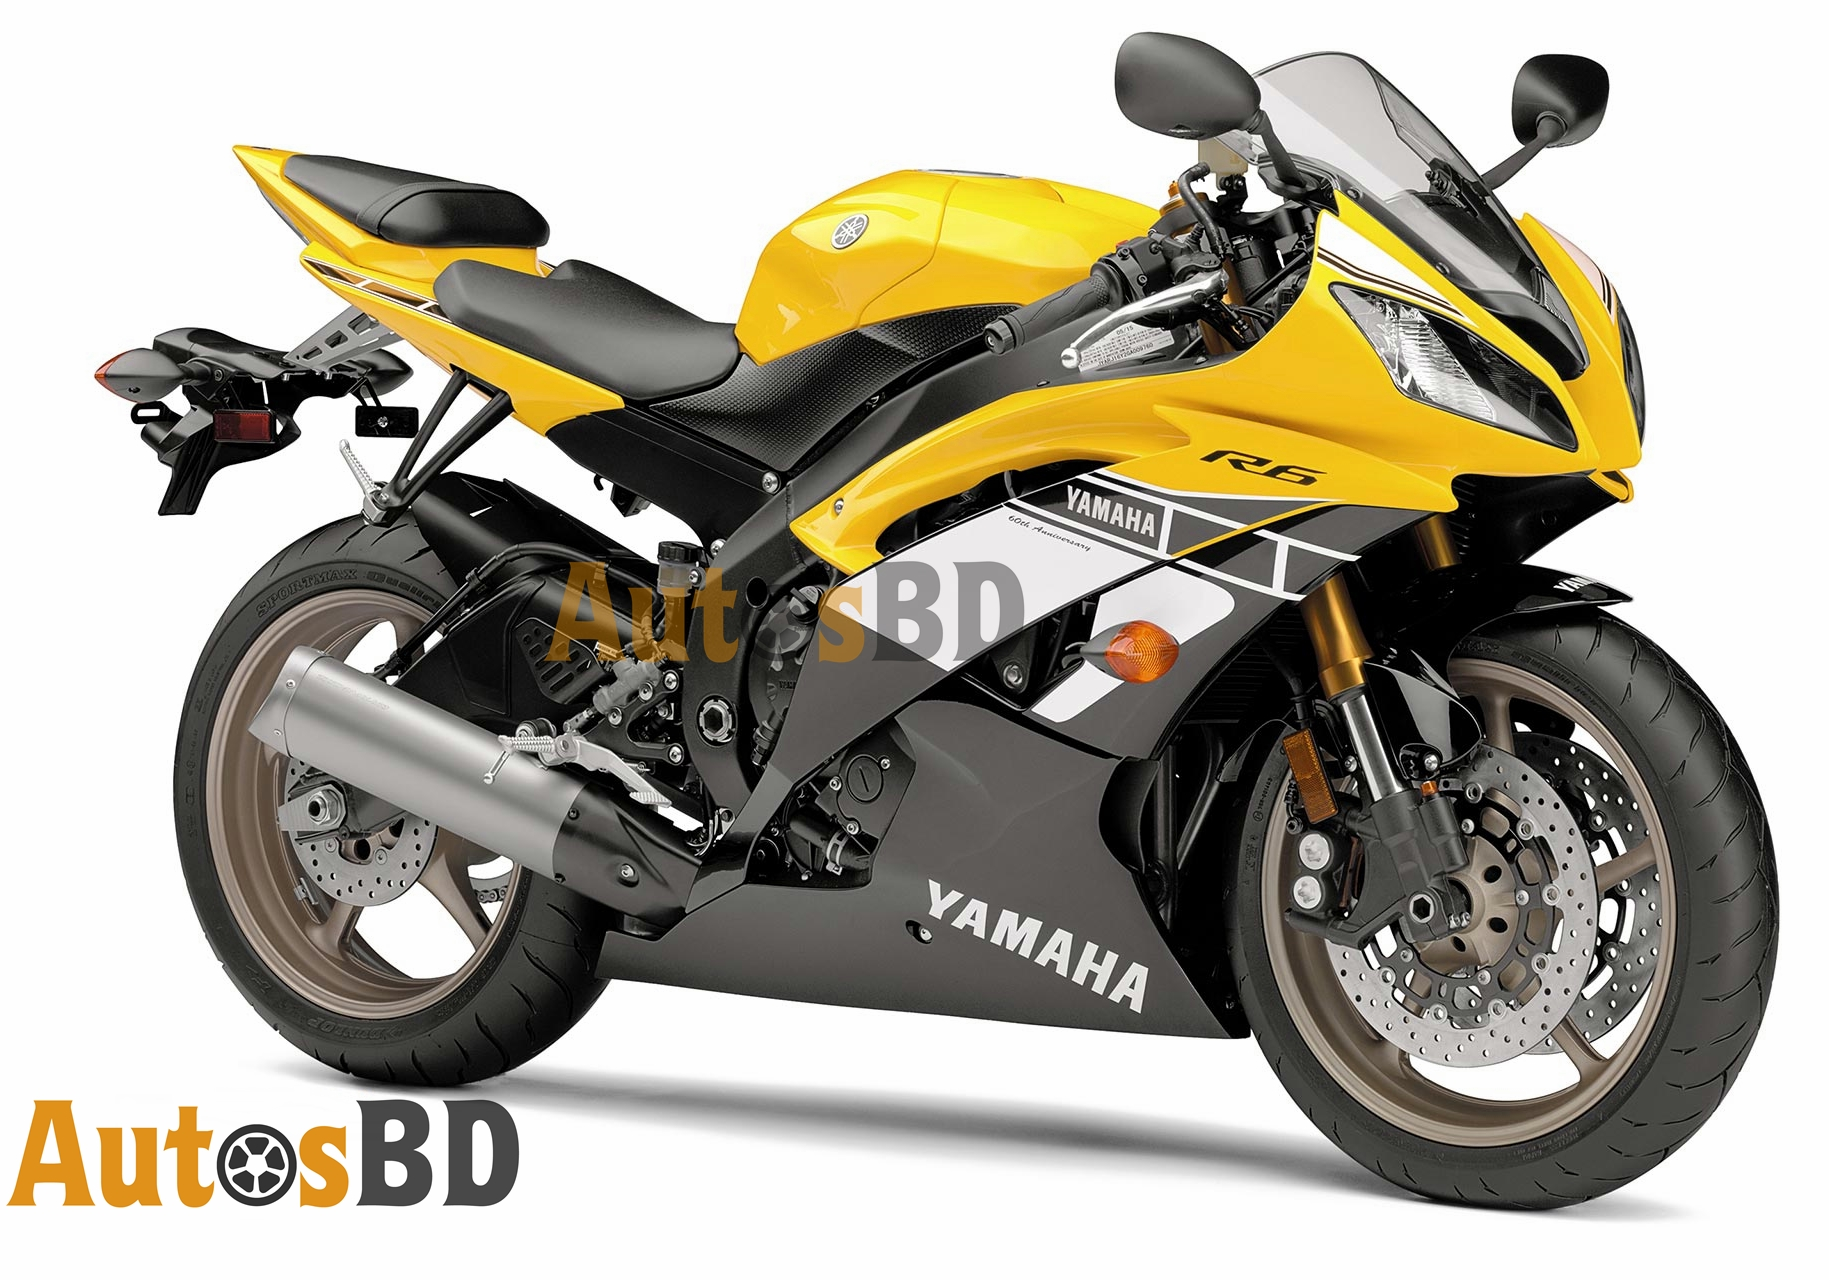 Yamaha YZF-R6 Motorcycle Specification